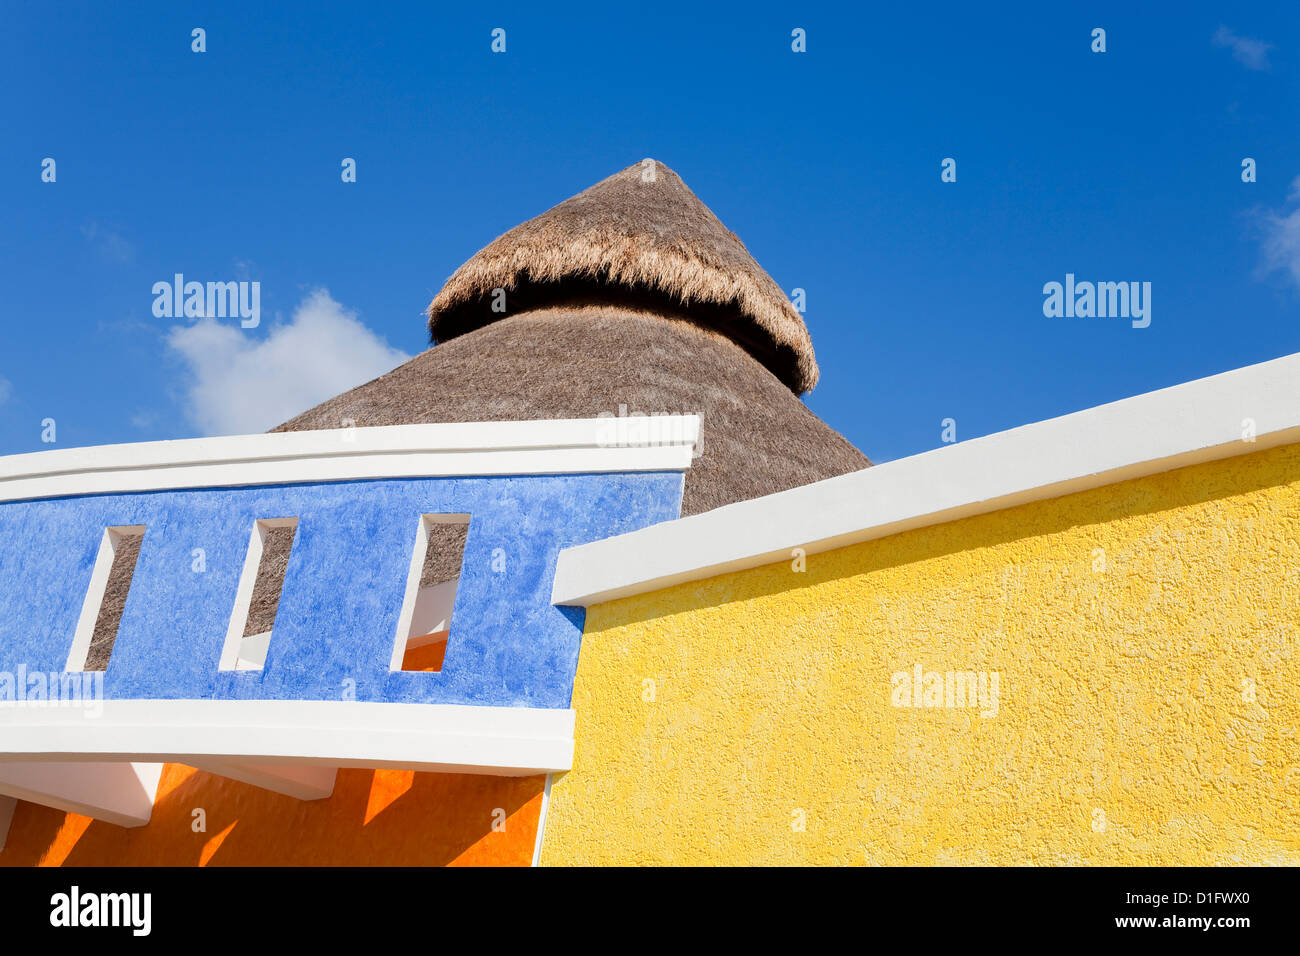 Architecture in Puerta Maya, Cozumel Island, Quintana Roo, Mexico, North America - Stock Image